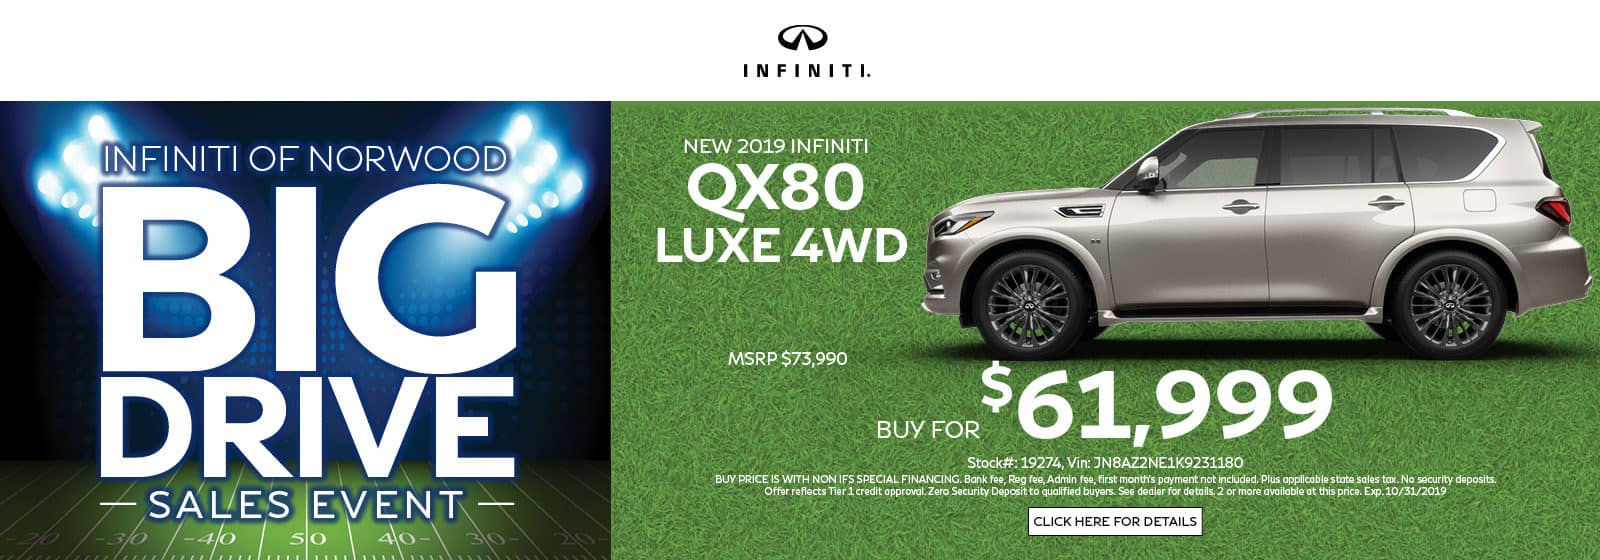 Buy a QX80 LUXE 4WD for $61,999